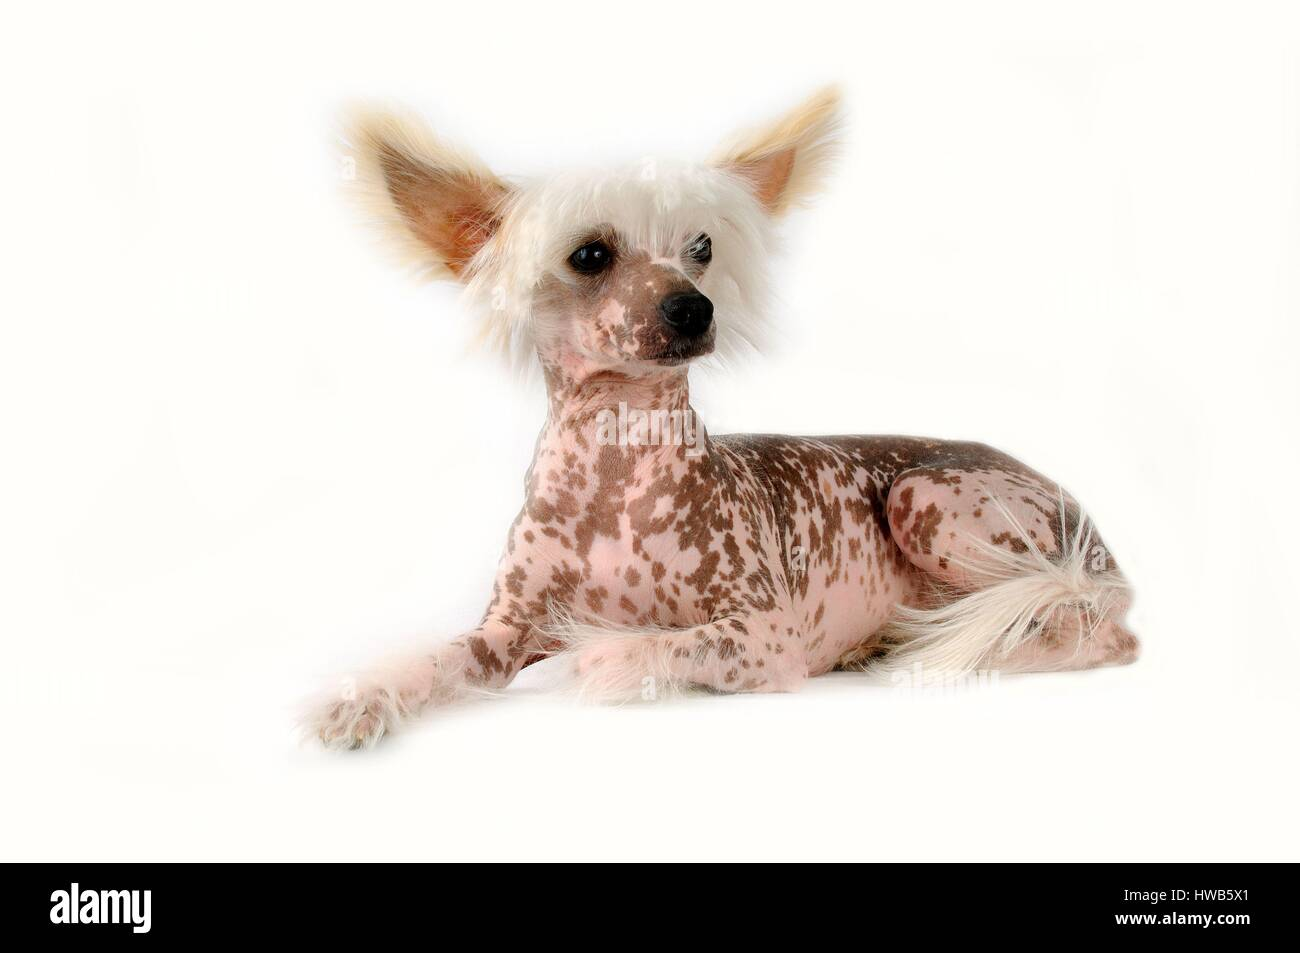 Chinese Crested Dog (Canis lupus familiaris) - Stock Image